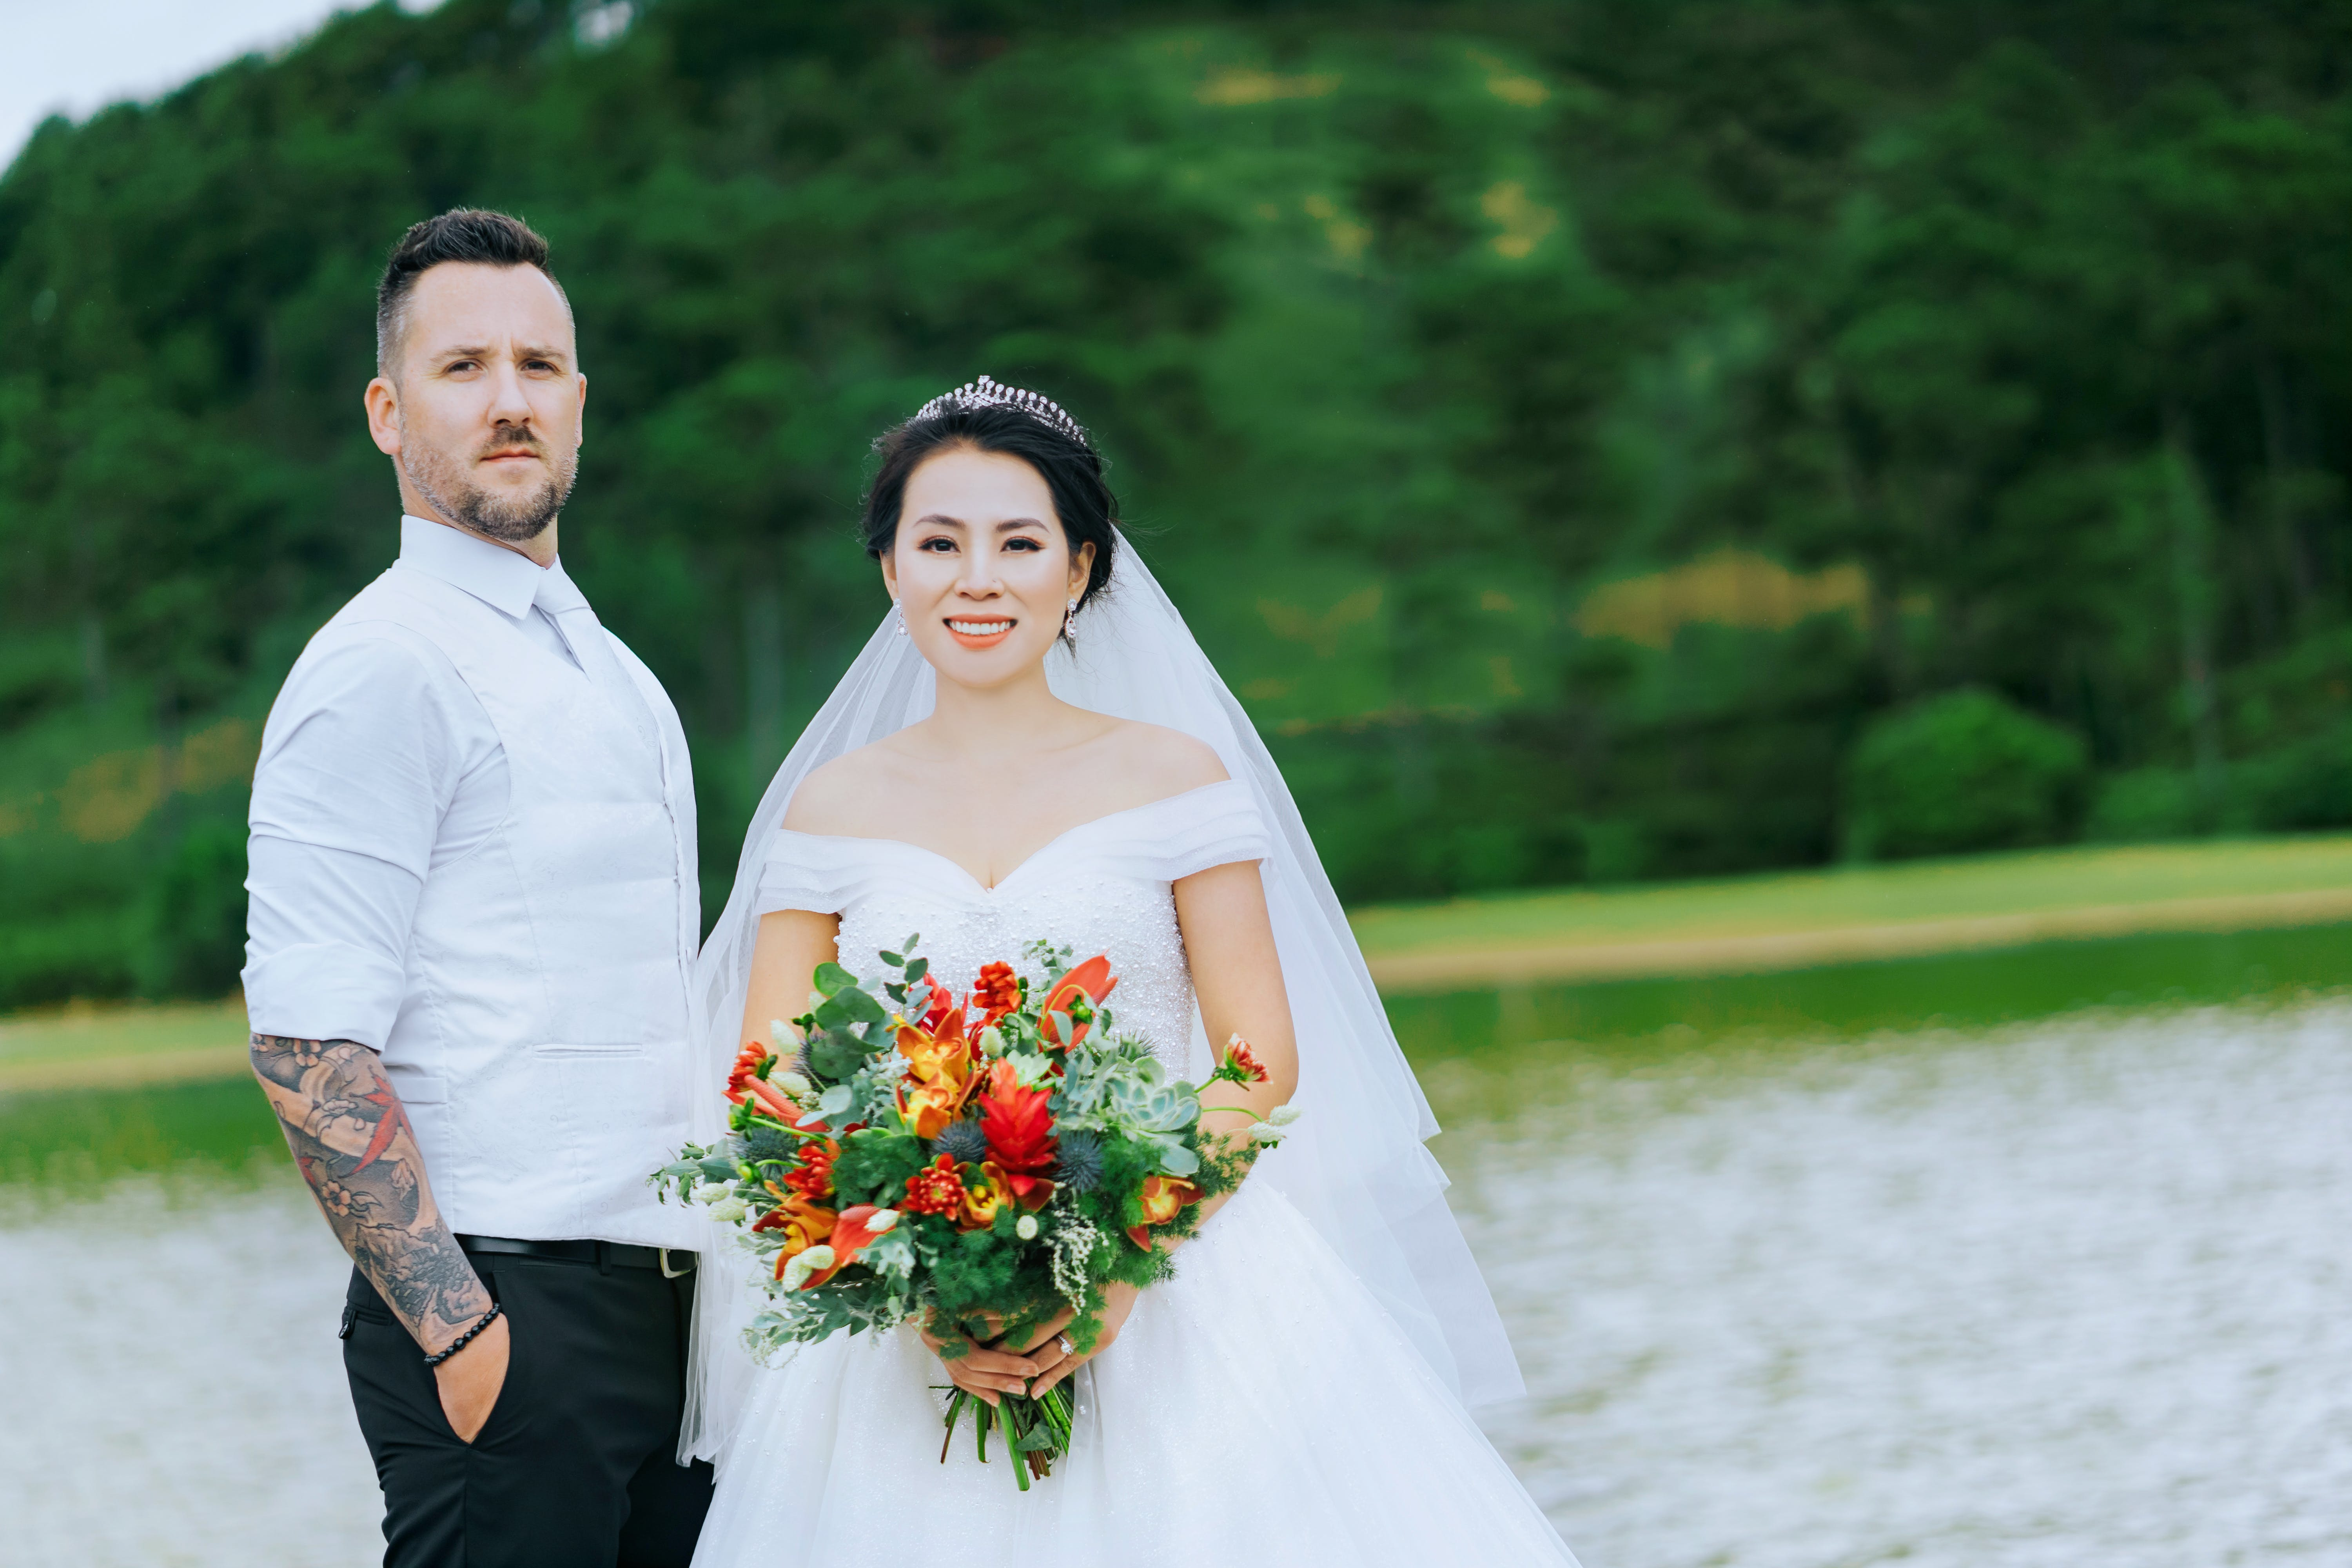 Man Standing Beside Bride Holding Bouquet Of Flowers